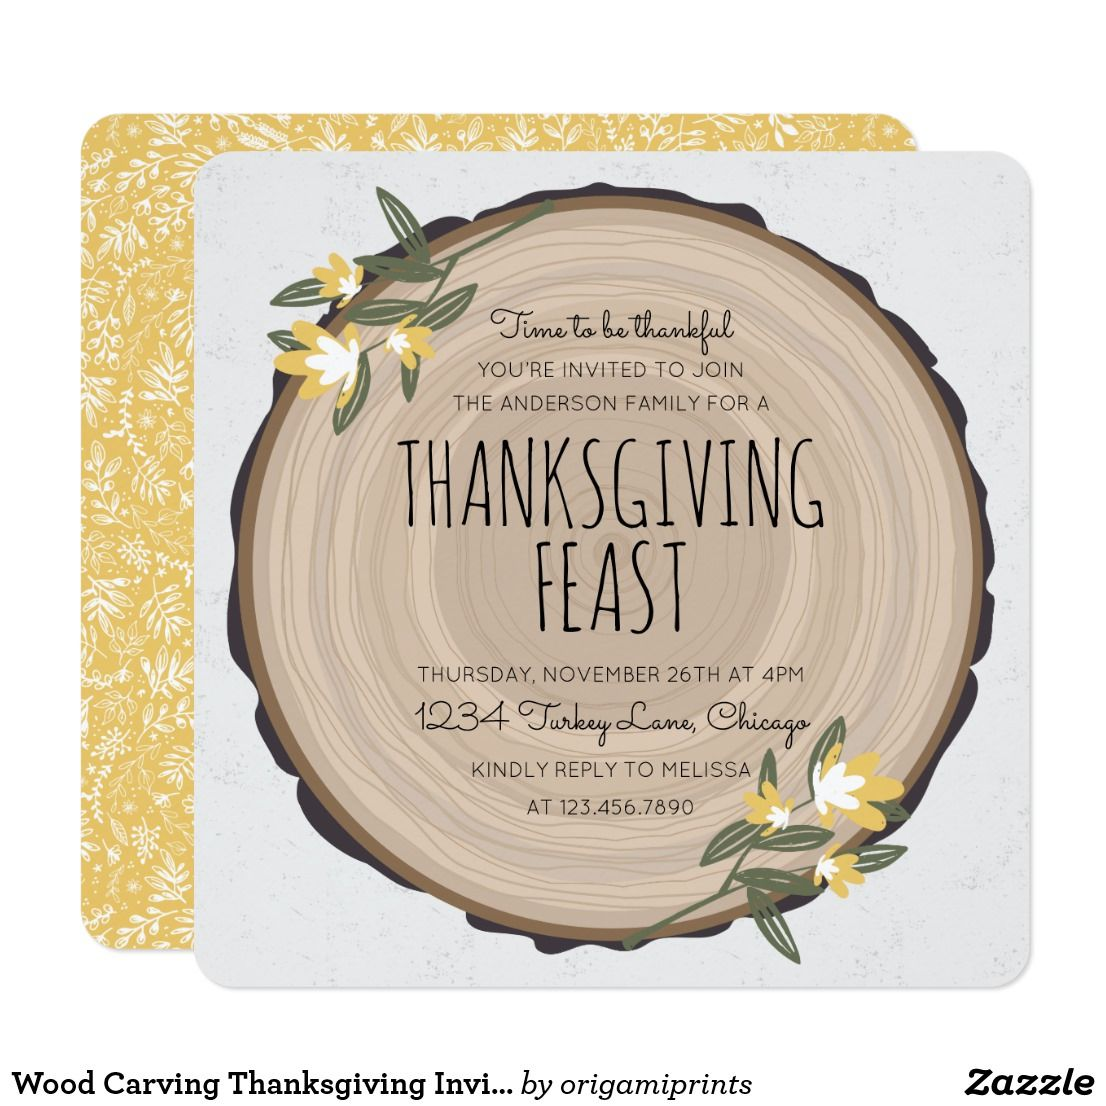 Wood Carving Thanksgiving Invite Rustic Dinner Invitation Design By Shelby Allison Featuring A Round Wooden